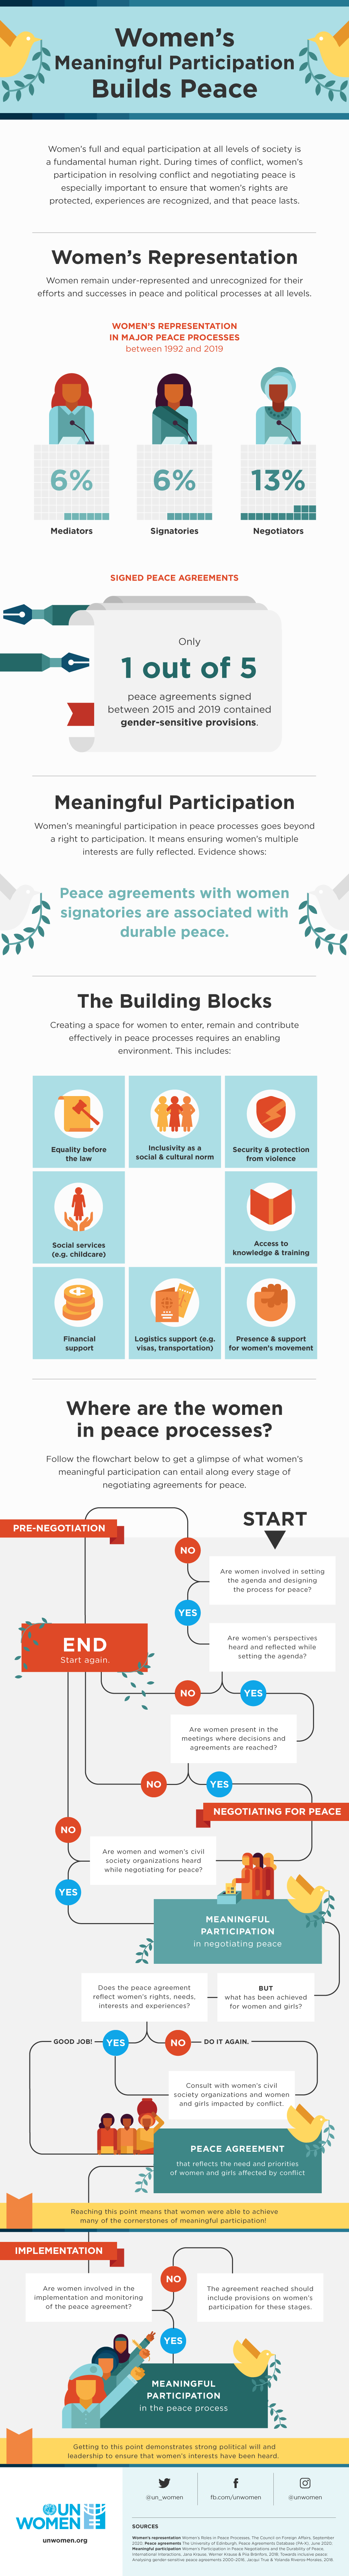 Women's full and equal participation at all levels of society is a fundamental human right. During times of conflict, women's participation in resolving conflict and negotiating peace is especially important to ensure that women's rights are protected, experiences are recognized, and that peace lasts.